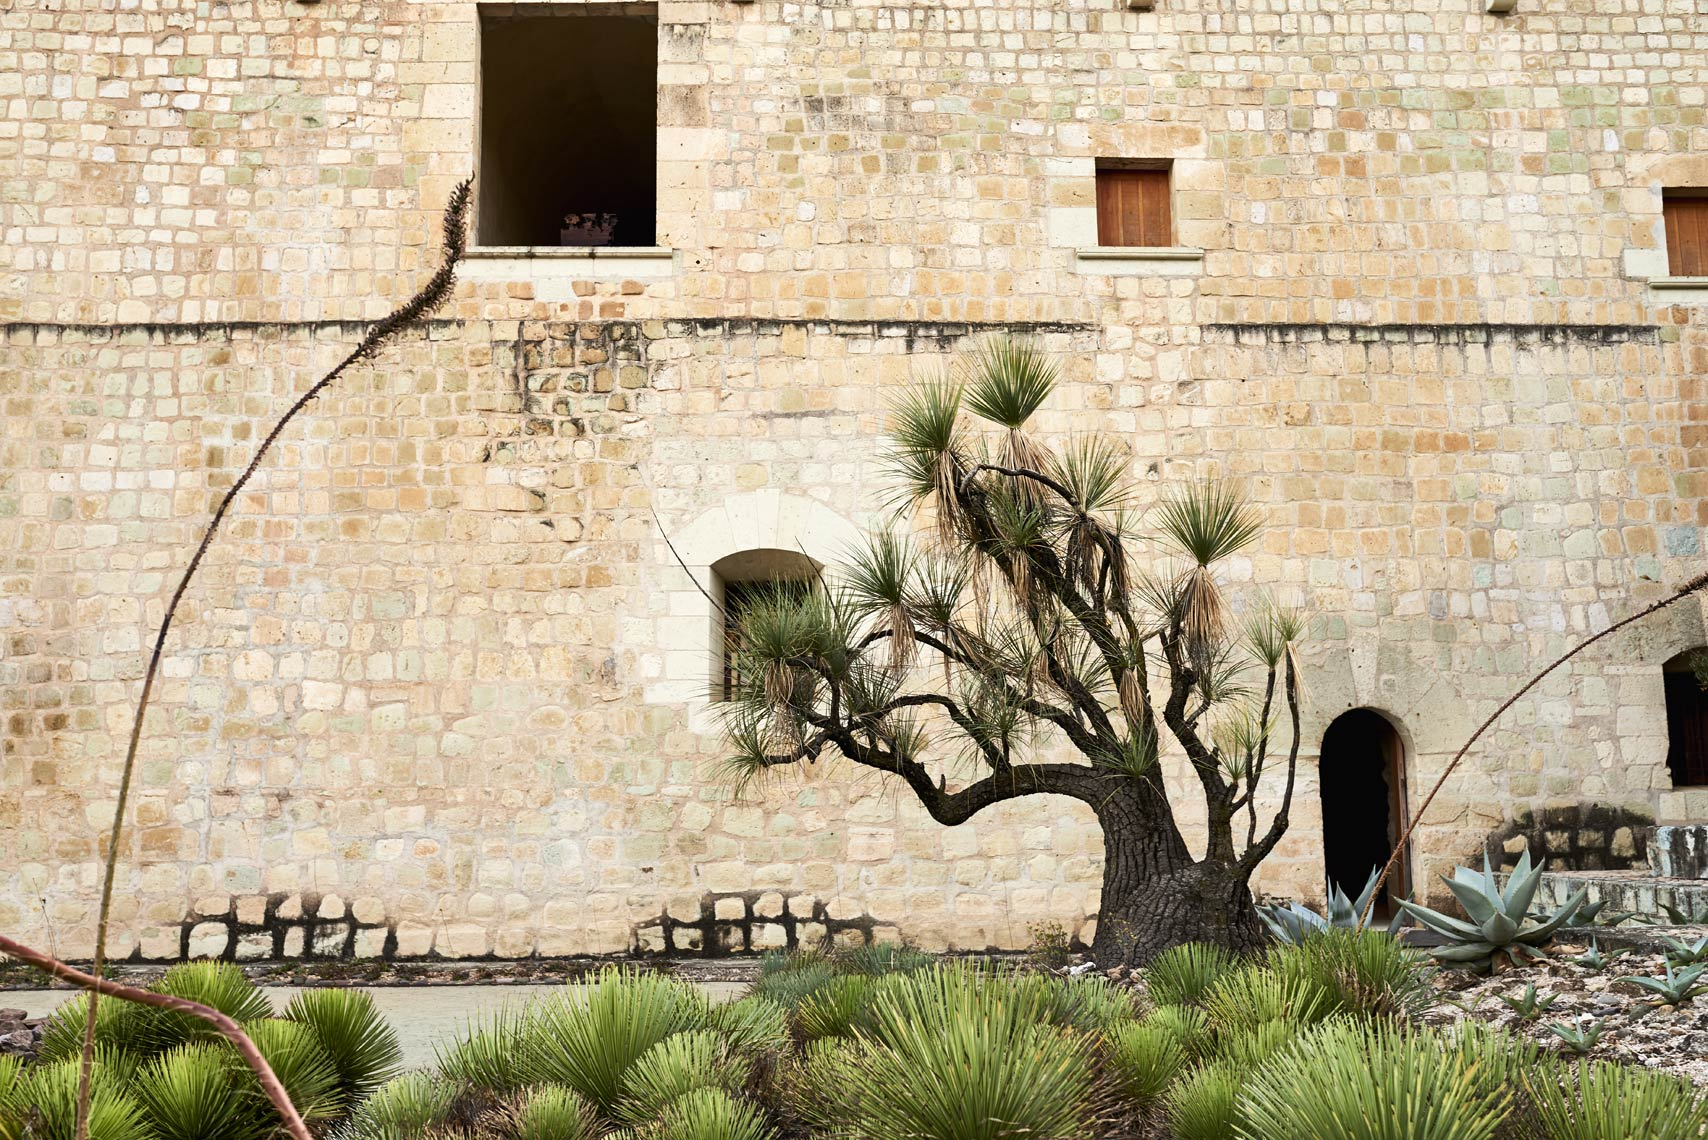 Beautiful-cactus-tree-along-old-brick-wall